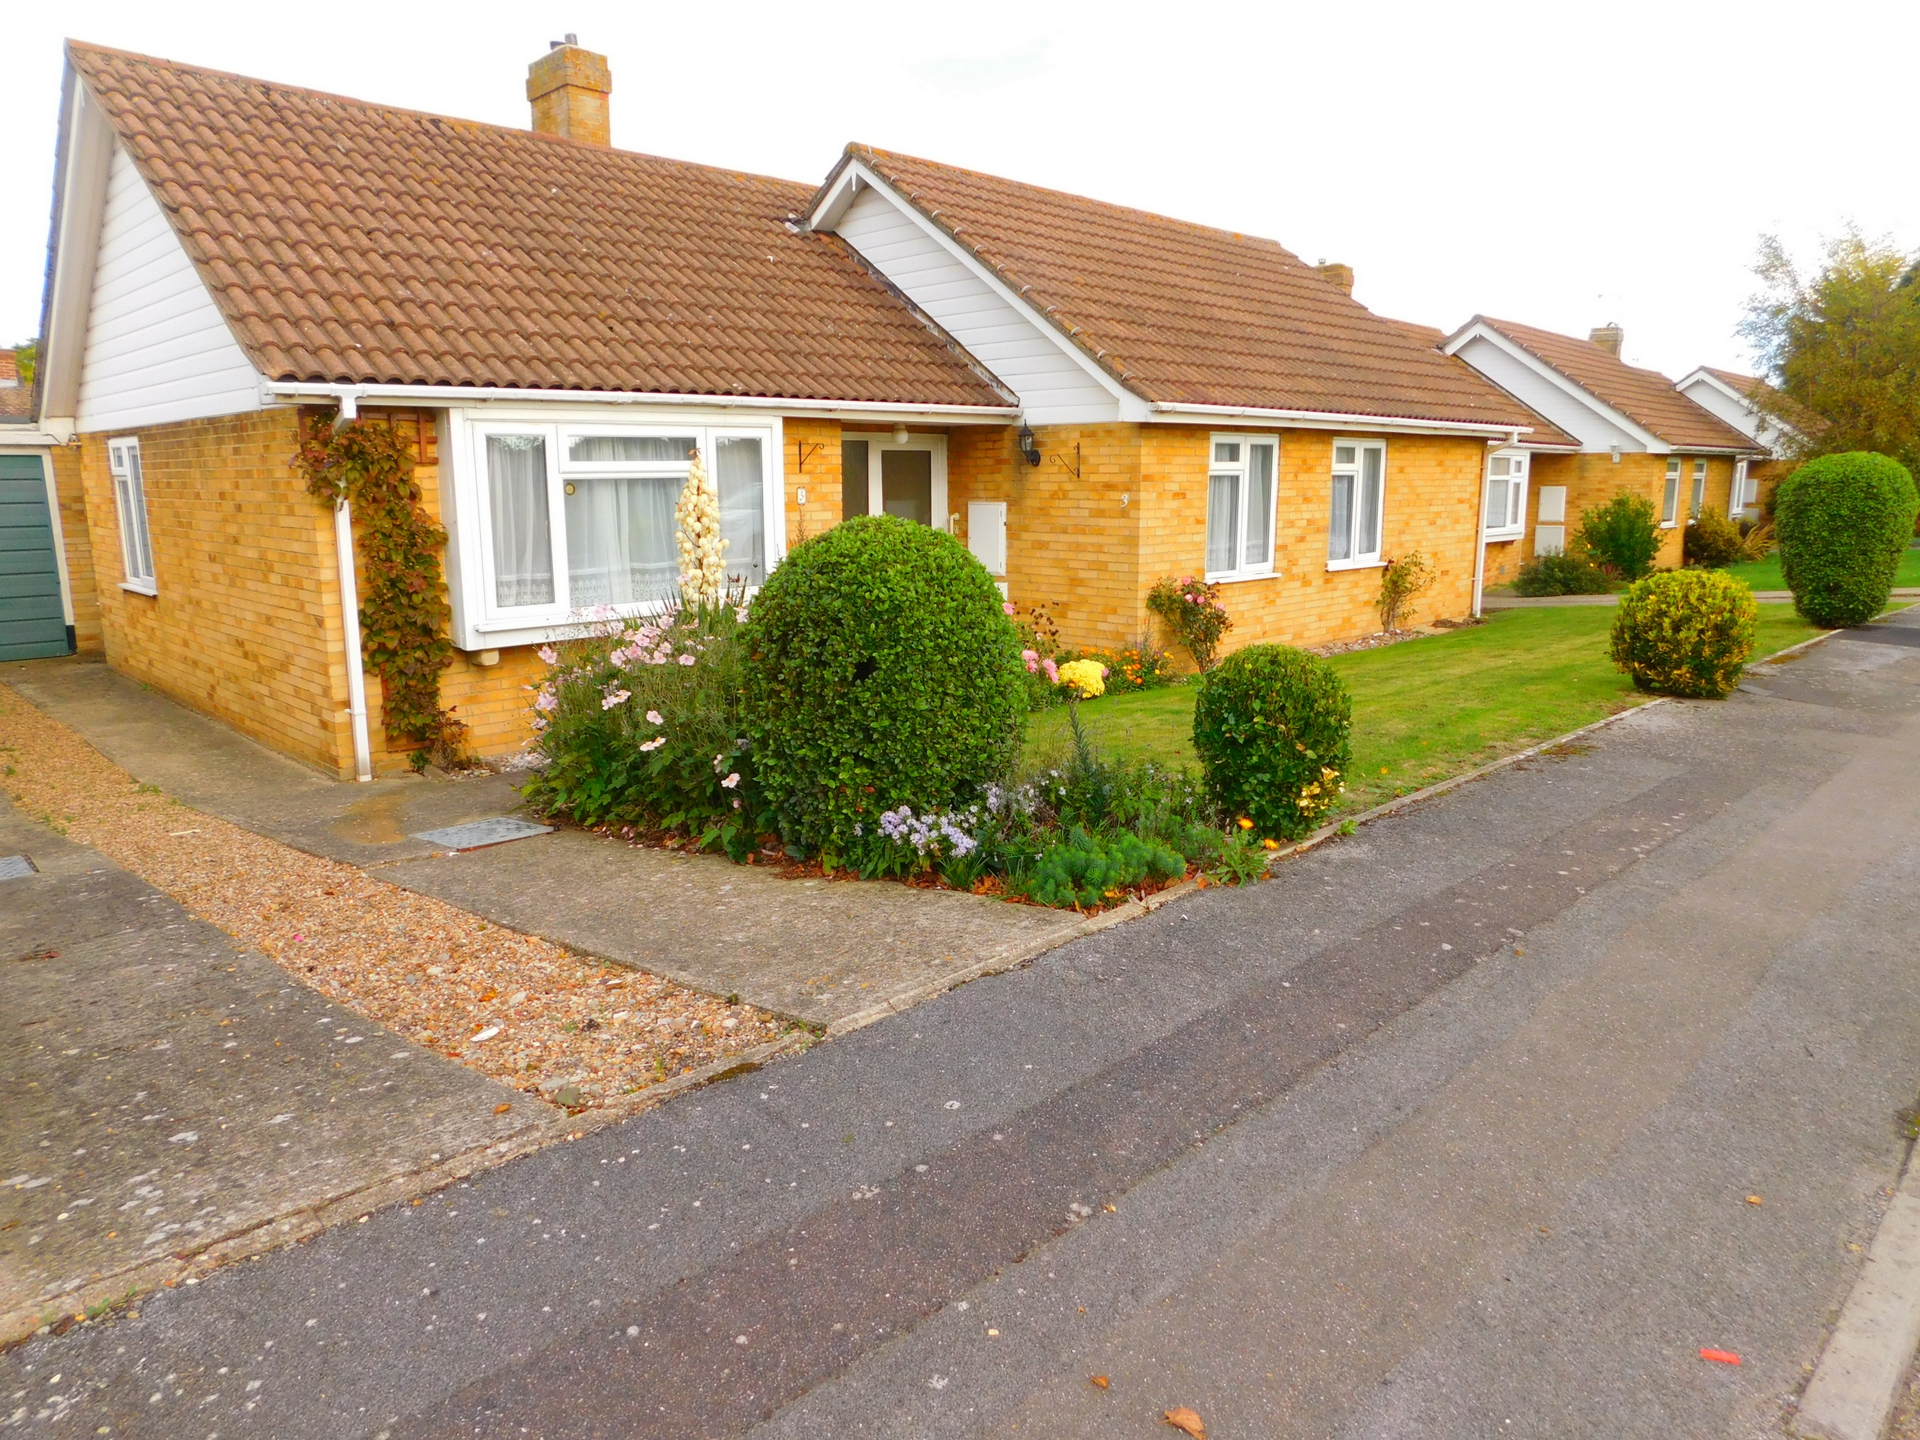 3 bed bungalow to rent in Cheesmans Close, Minster, CT12 0